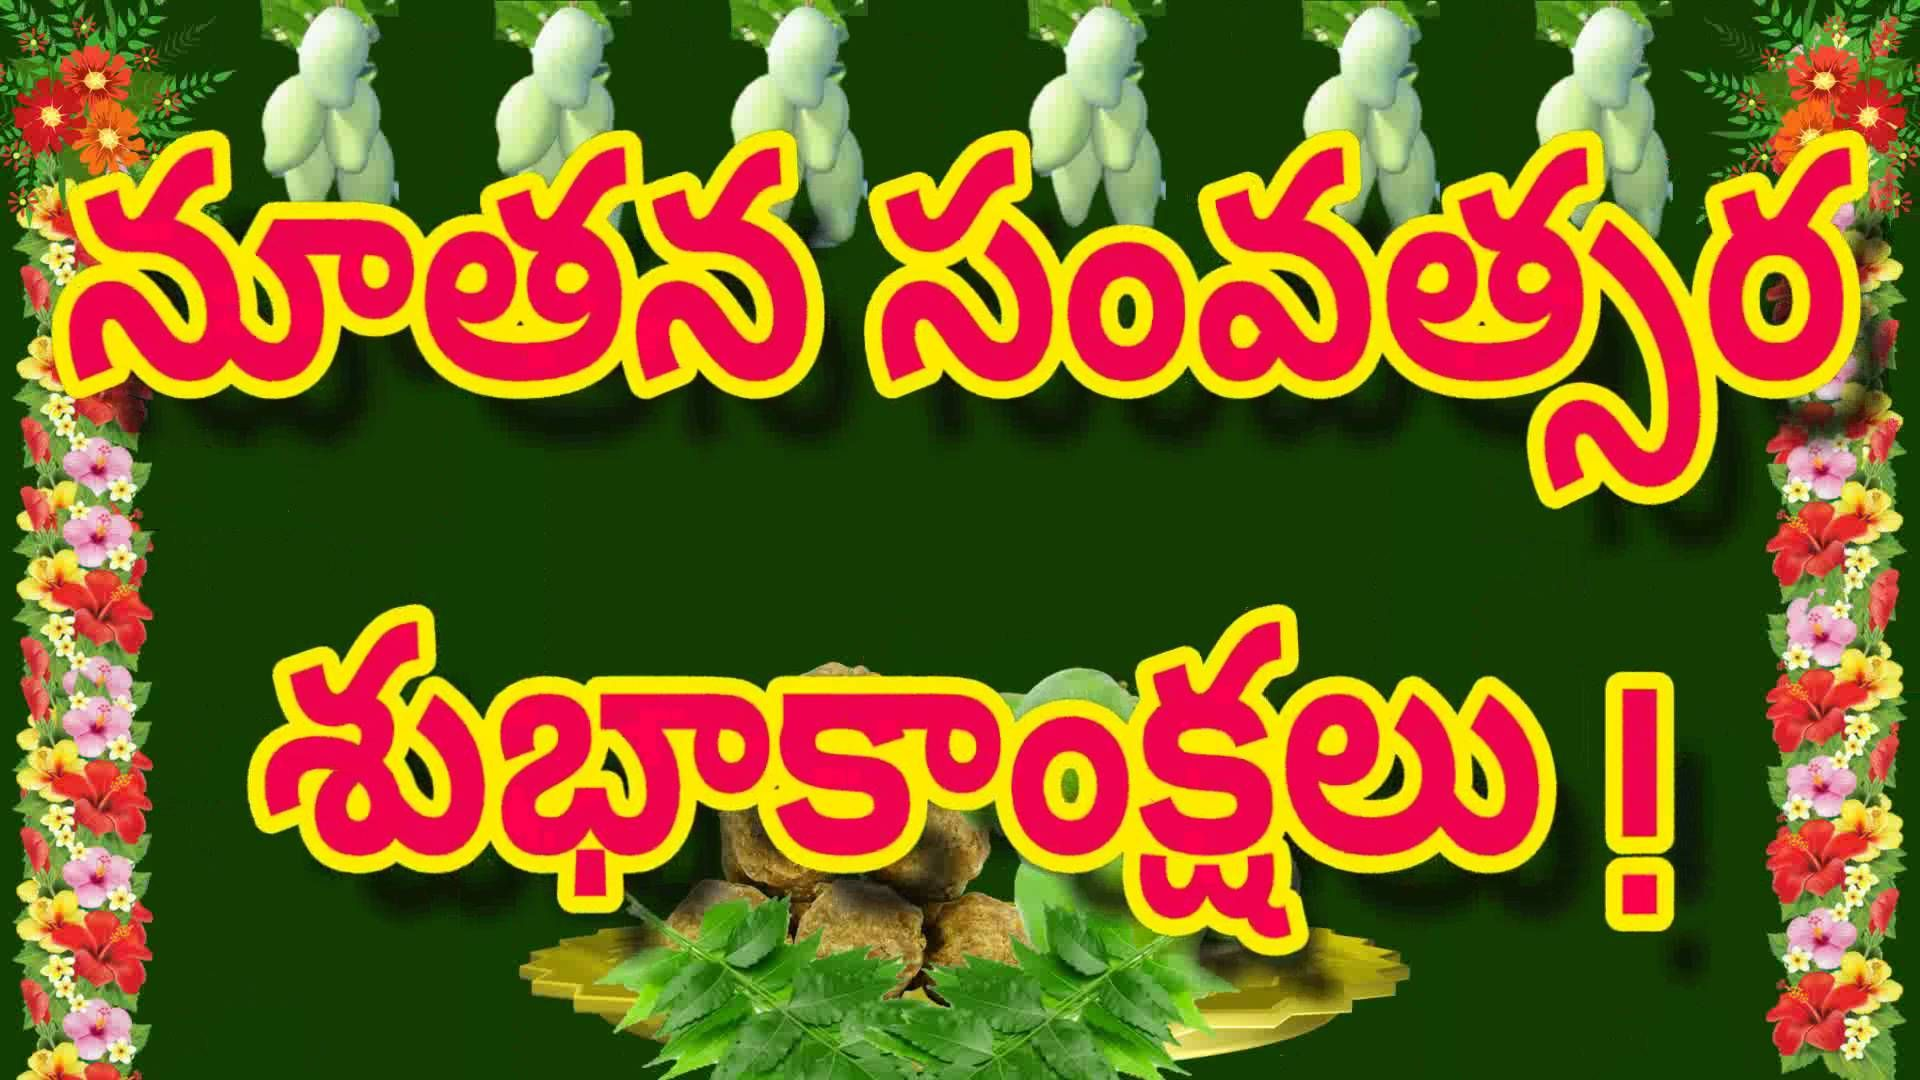 happy ugadi 2016 ugadi wishes ugadi animation ugadi greetings ugadi